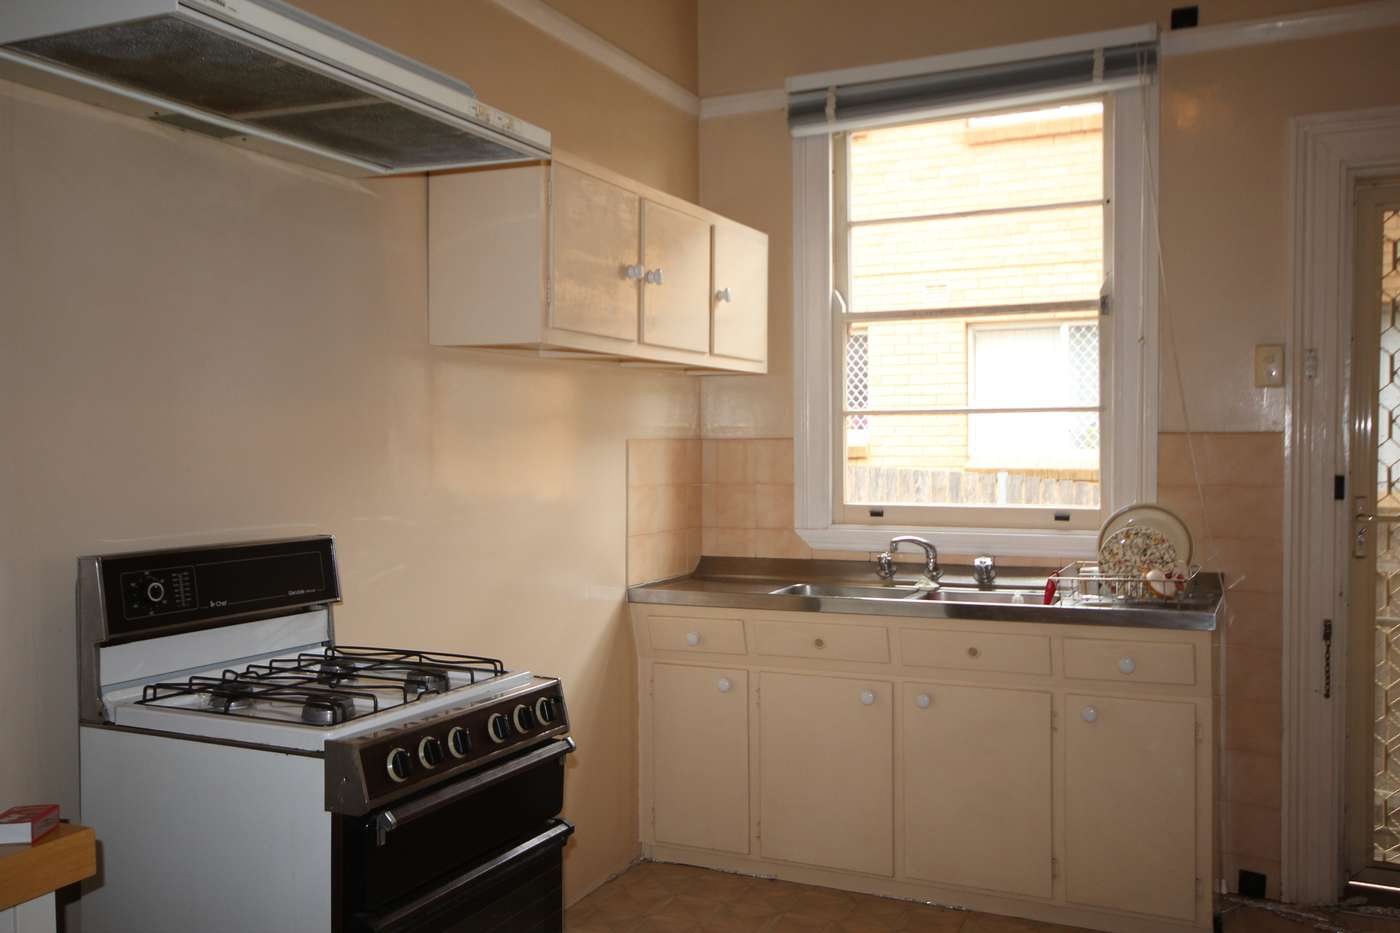 Main view of Homely apartment listing, 3/27 Prospect Road, Summer Hill, NSW 2130